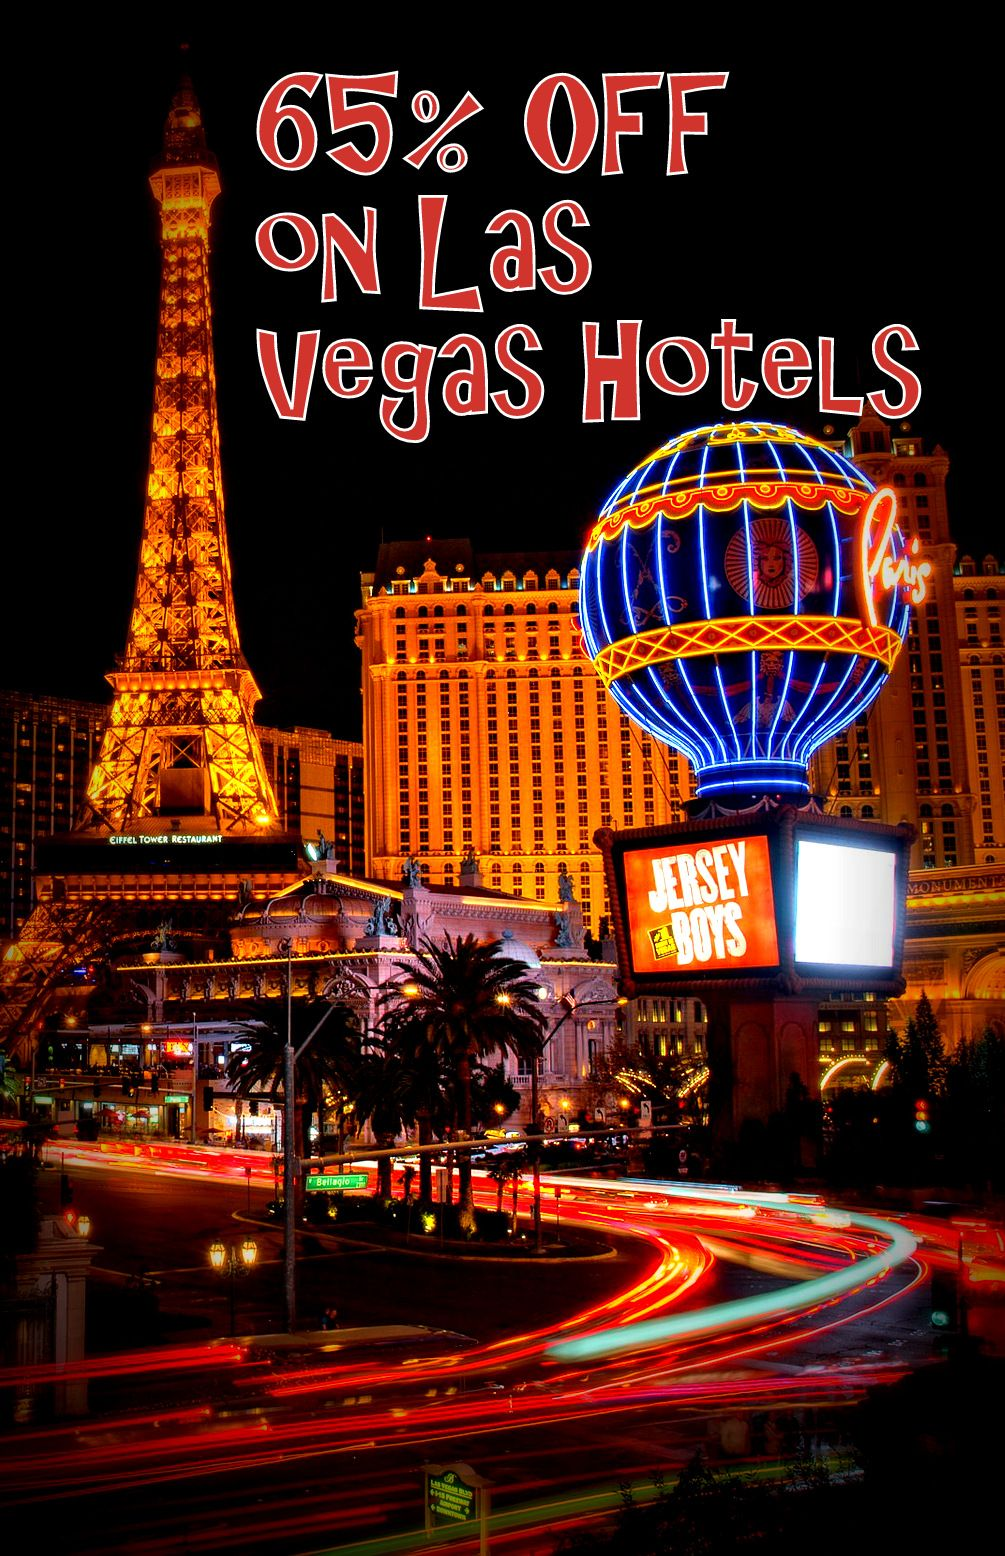 Get up to 65 OFF on Las Vegas Hotels! All the top travel